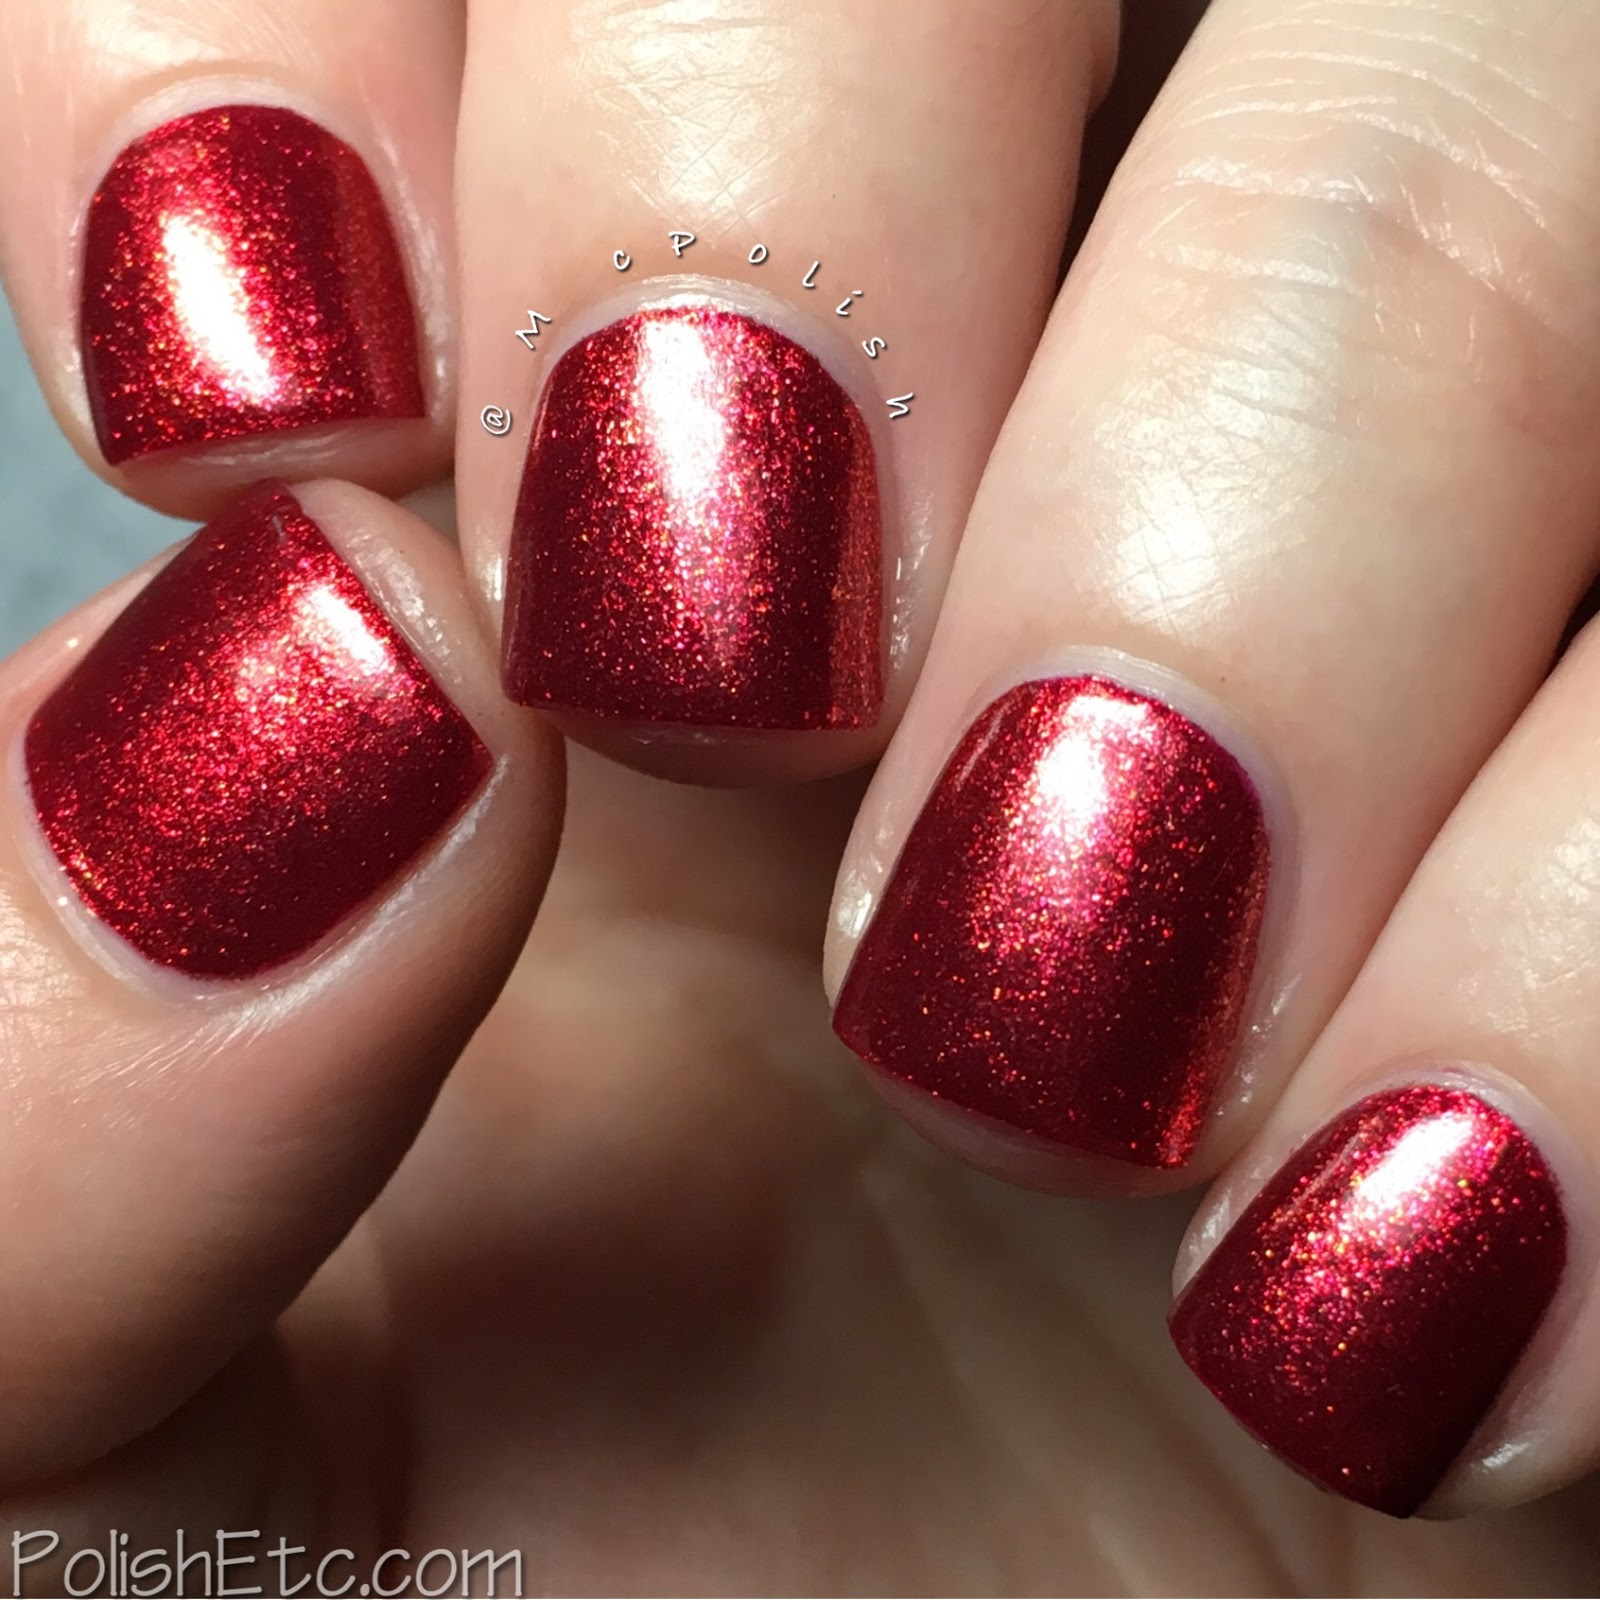 Whimsical Ideas by Pam - Whimsical Valentines 2017 - McPolish - Red Velvet